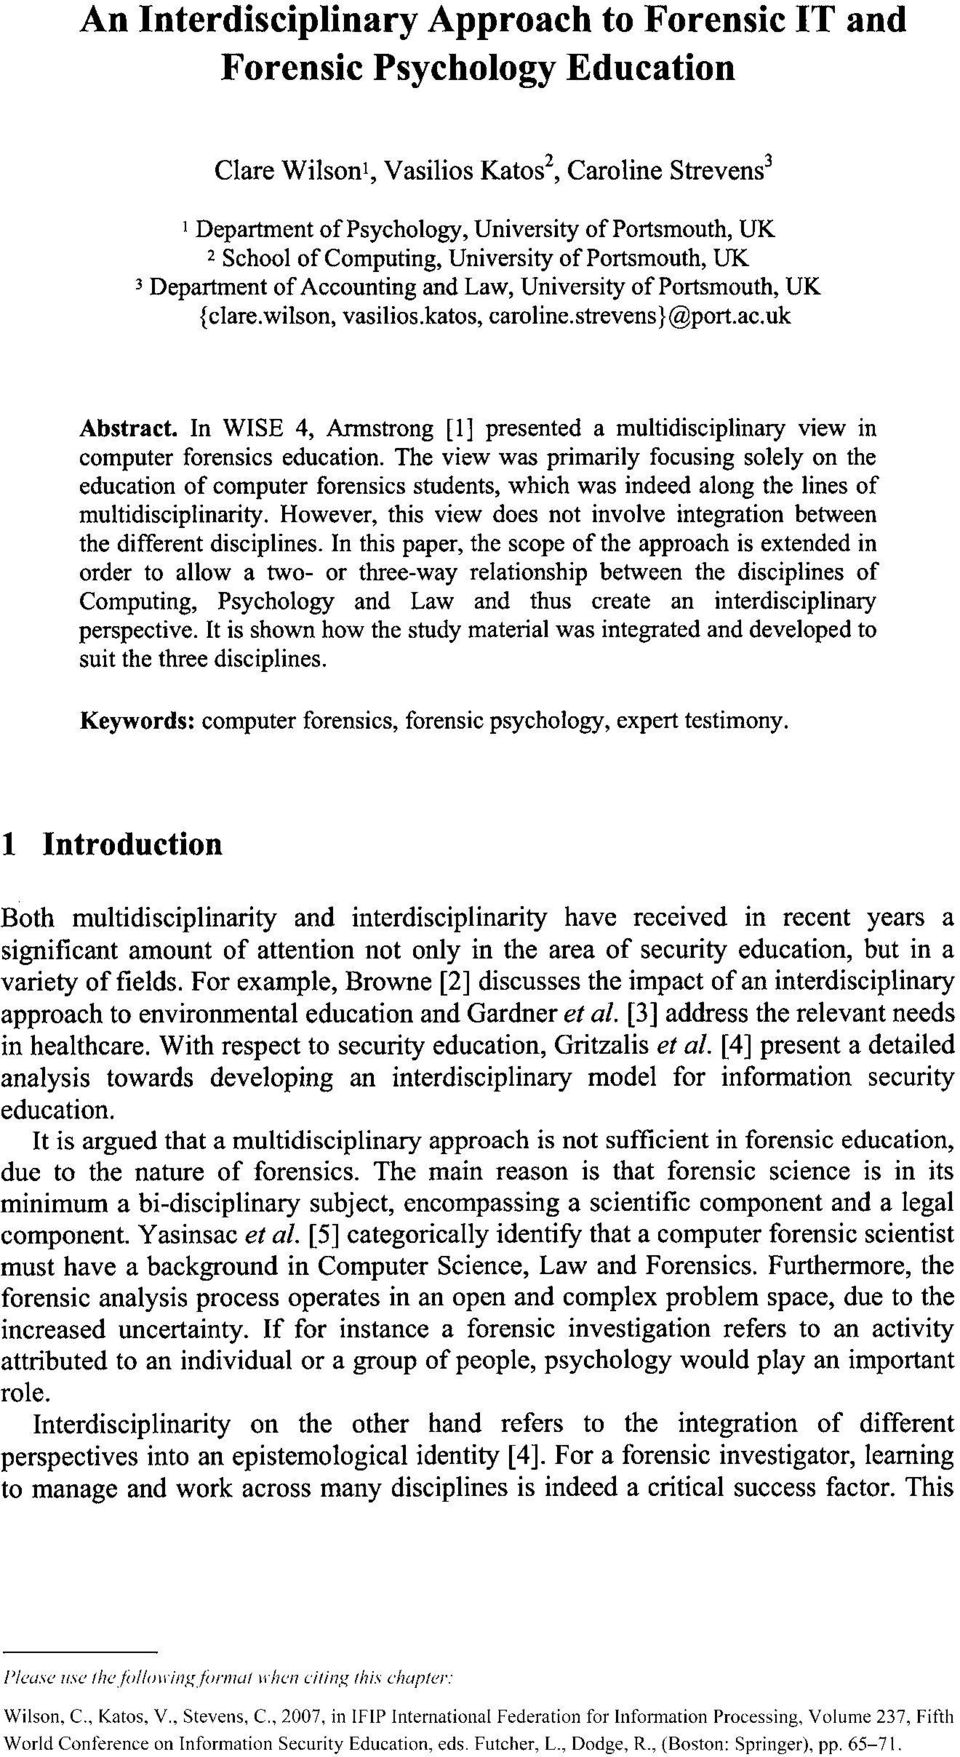 In WISE 4, Armstrong [1] presented a multidisciplinary view in computer forensics education.